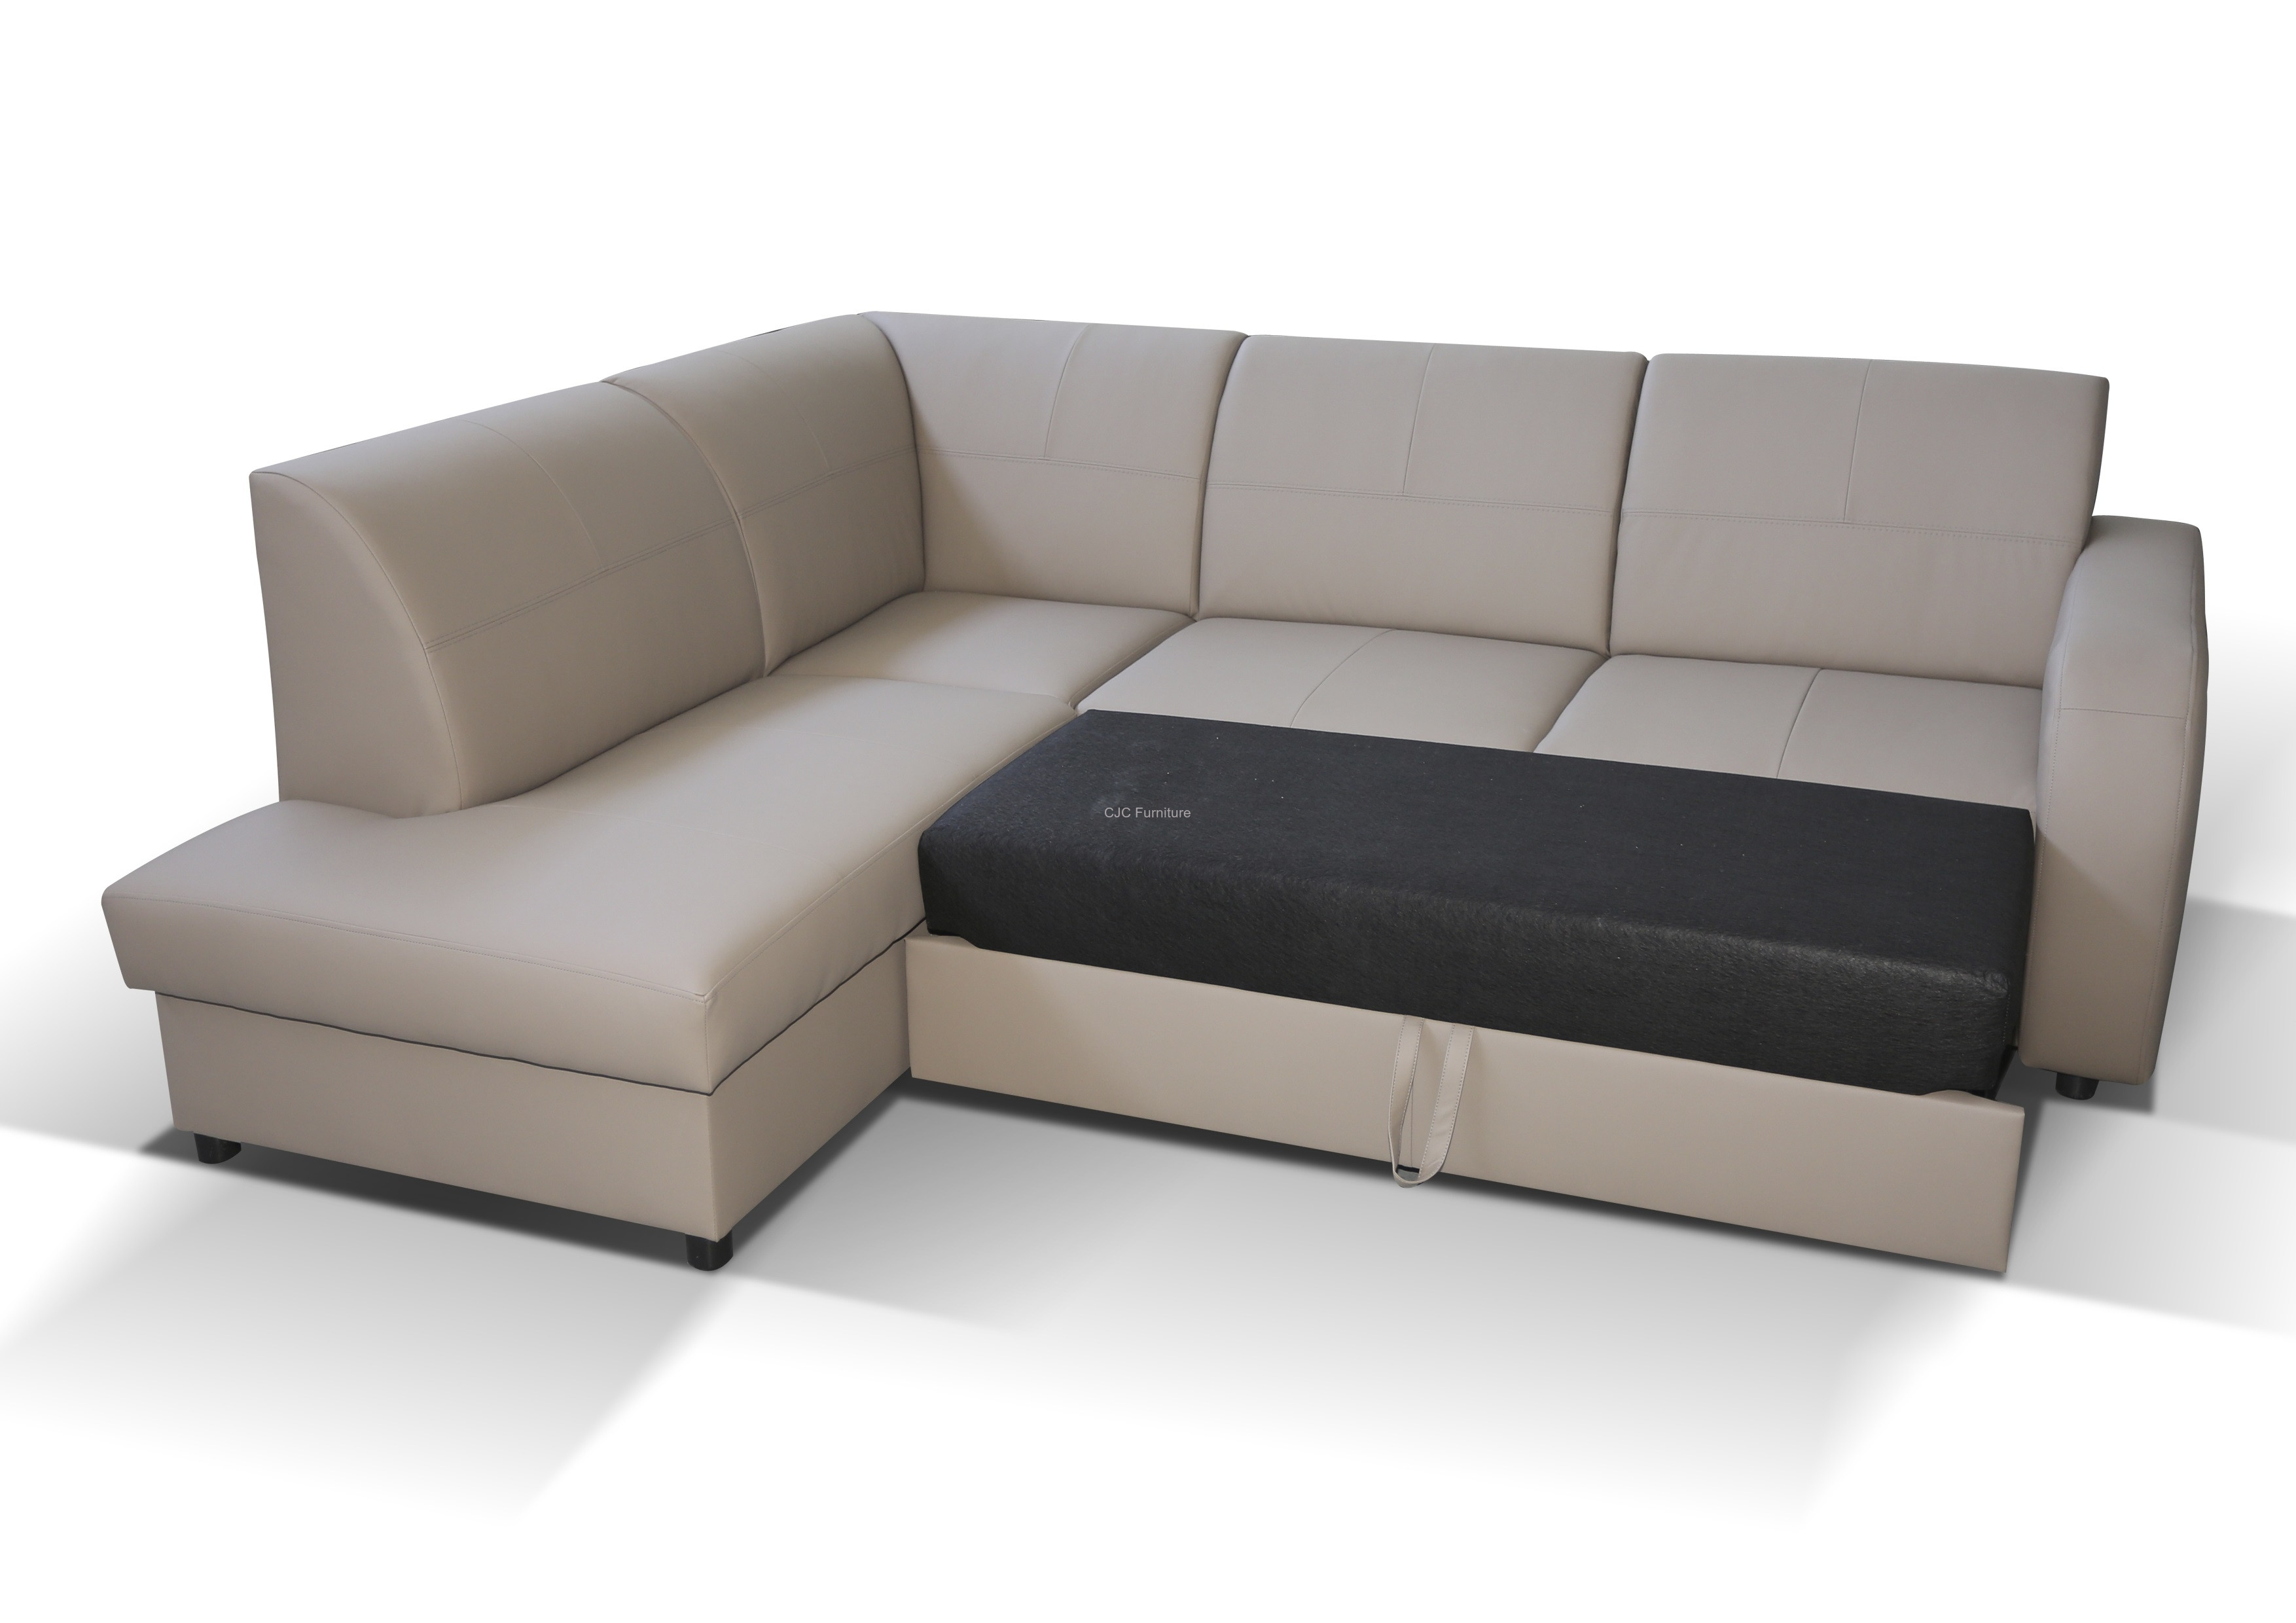 Corner Sofa Bed Style For New Home Design Eva Furniture Inside Cheap Corner Sofa Beds (Image 4 of 15)